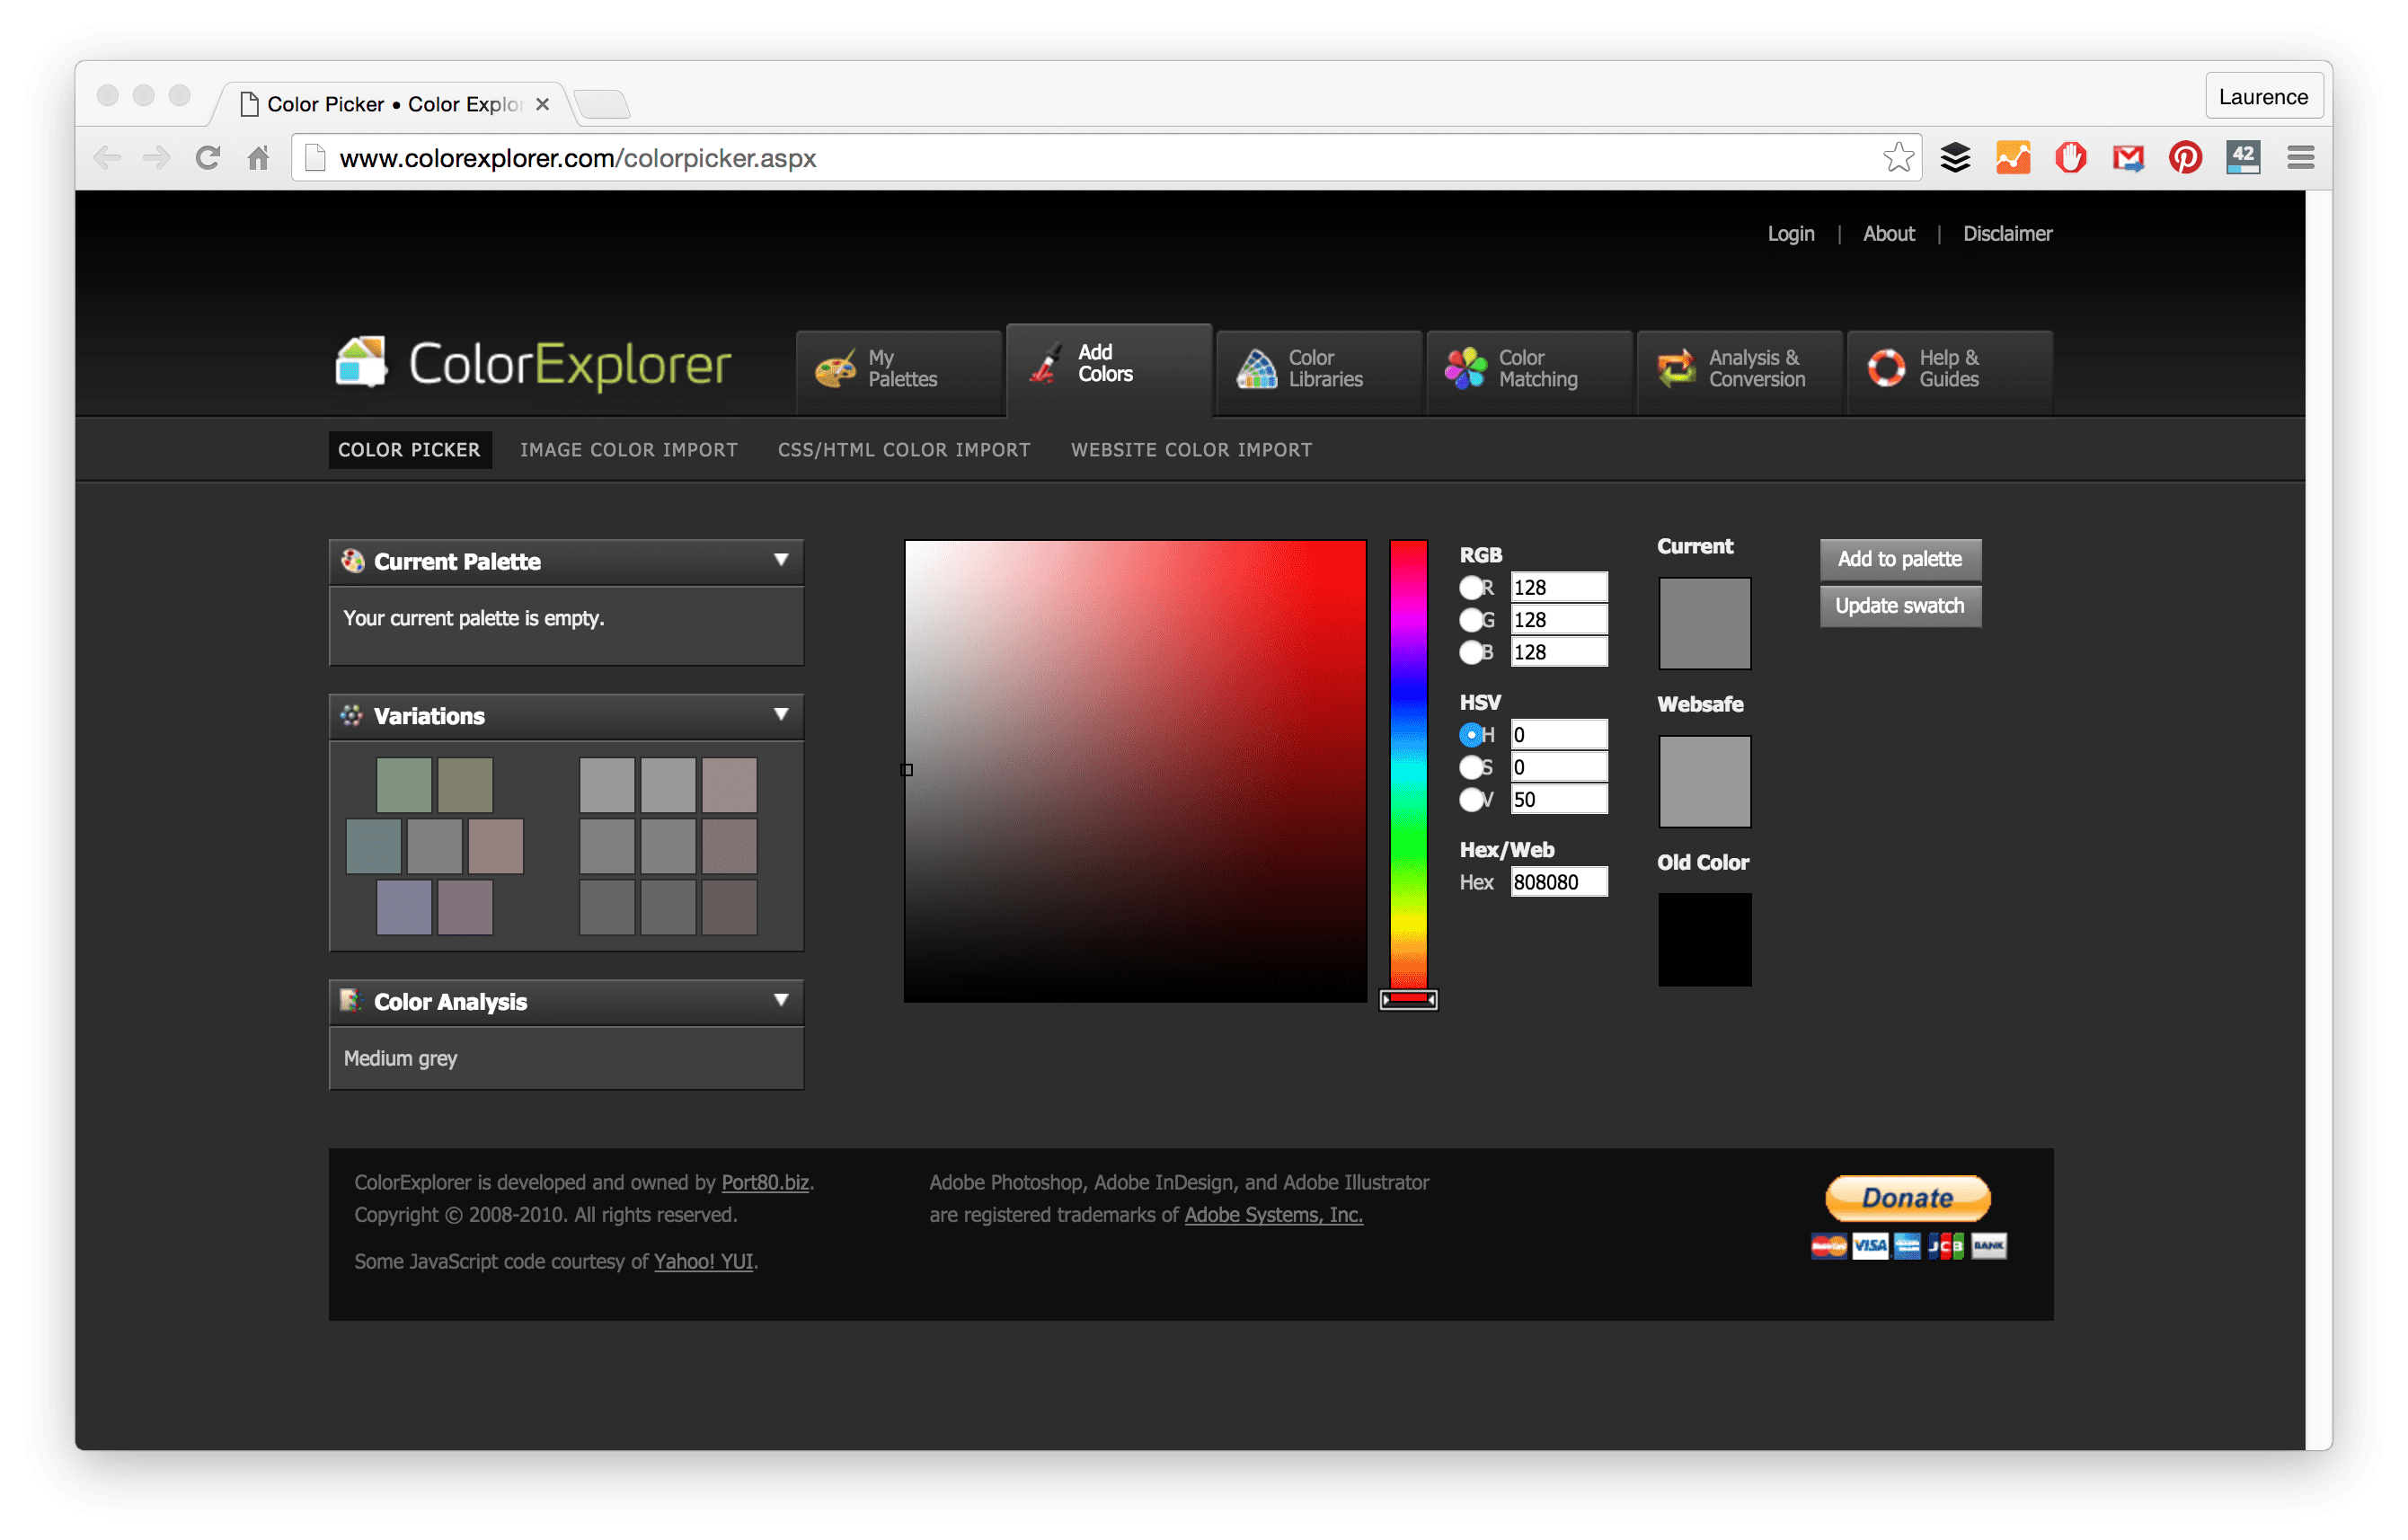 Color adobe online - With Colorexplorer There Are Four Ways To Generate Color Schemes These Include Color Picker Image Color Import Css Html Color Import And Website Color